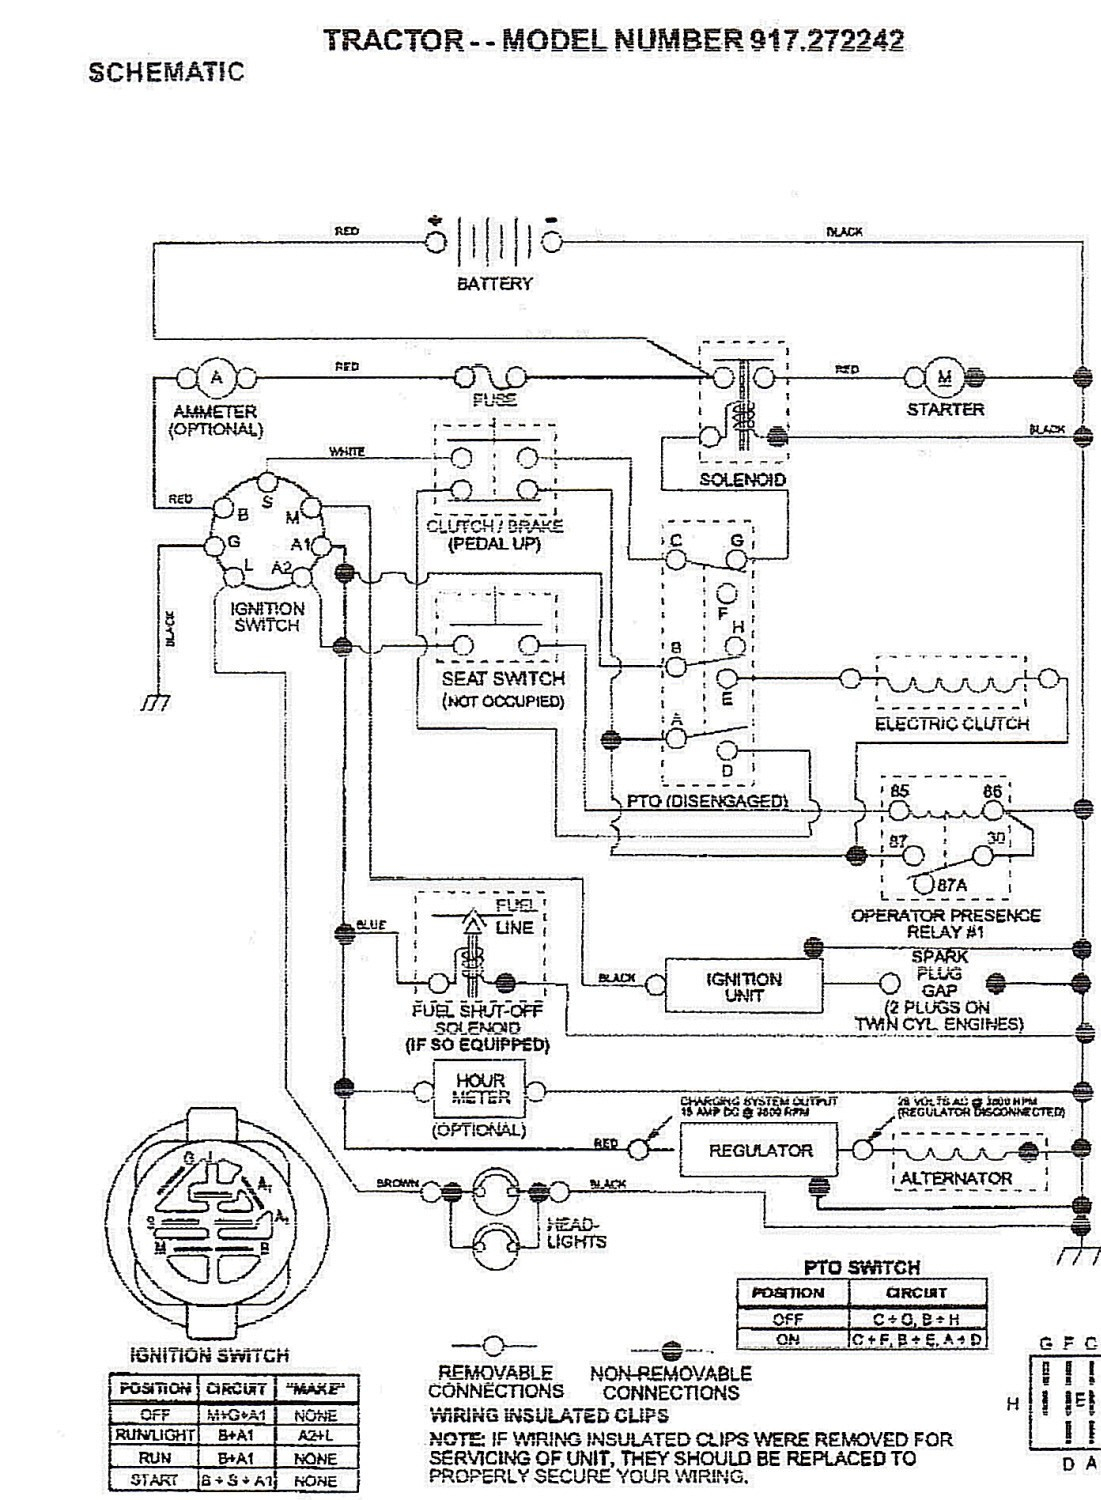 5Hp Briggs And Stratton Carburetor Diagram 10 5 Hp Briggs Stratton Engine Parts Diagram Wiring Wiring Diagram